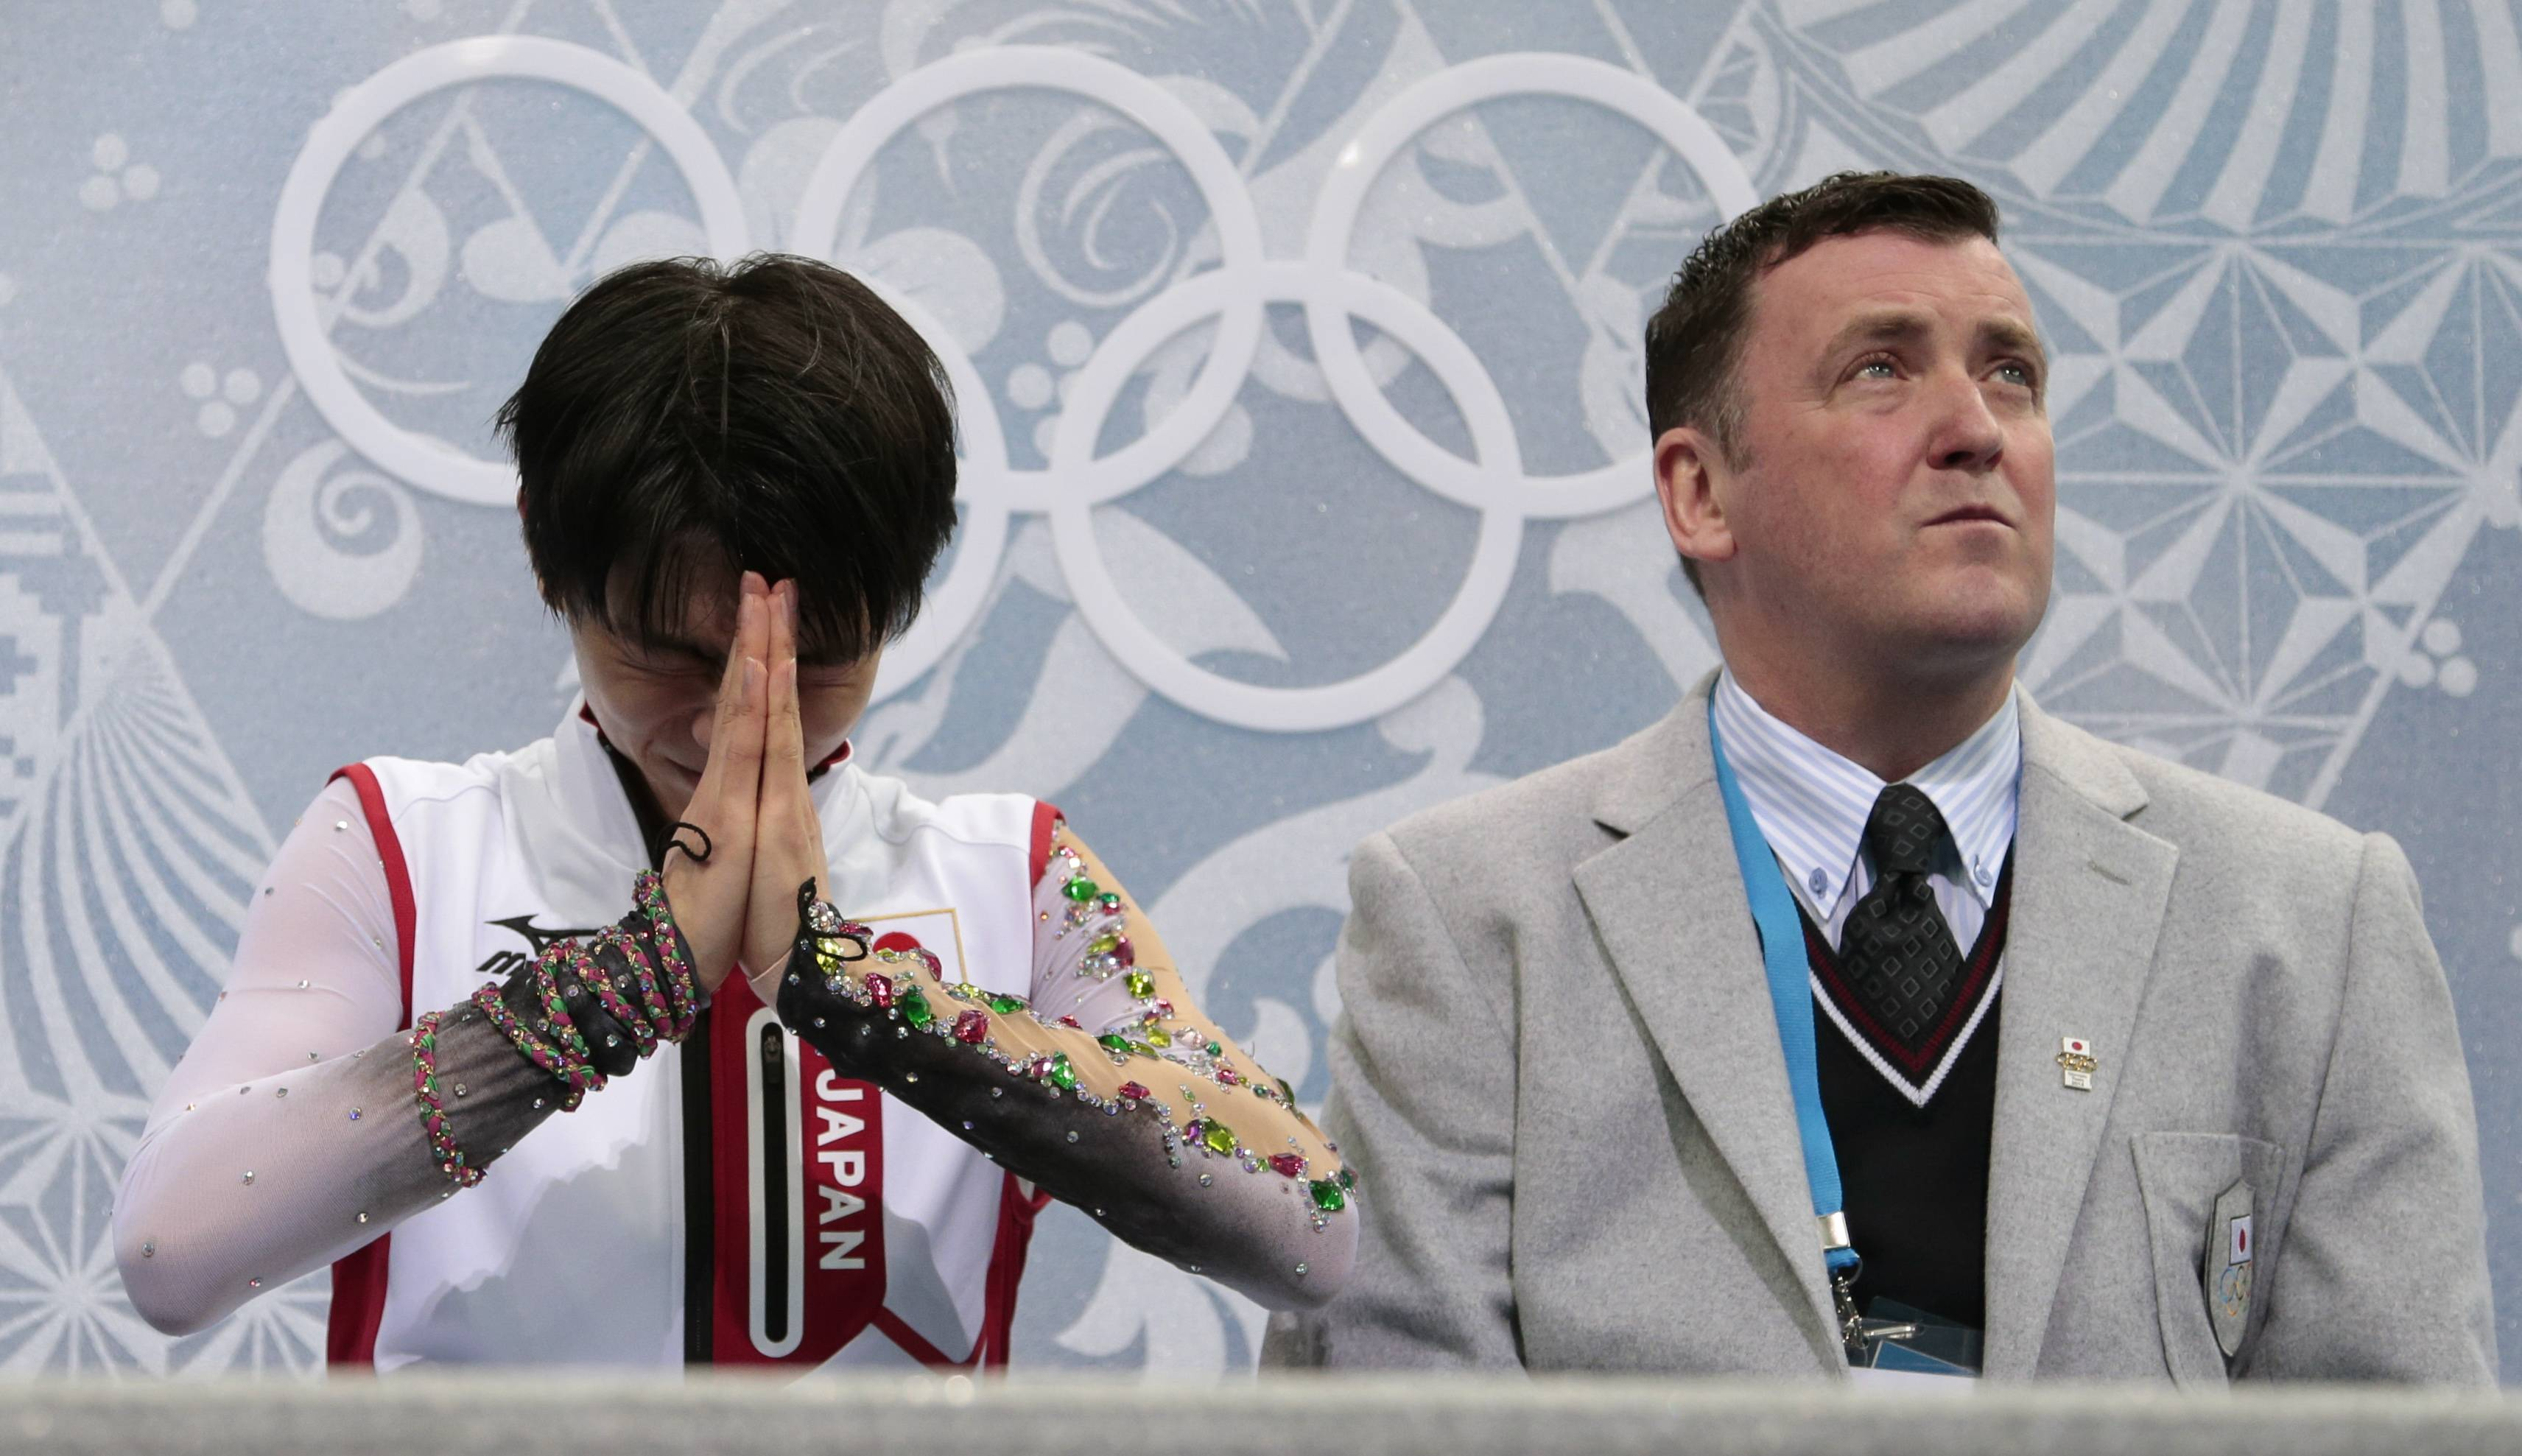 Yuzuru Hanyu of Japan, left, reacts alongside his coach Brian Orser as he sits in the results area after the men's free skate figure skating final.